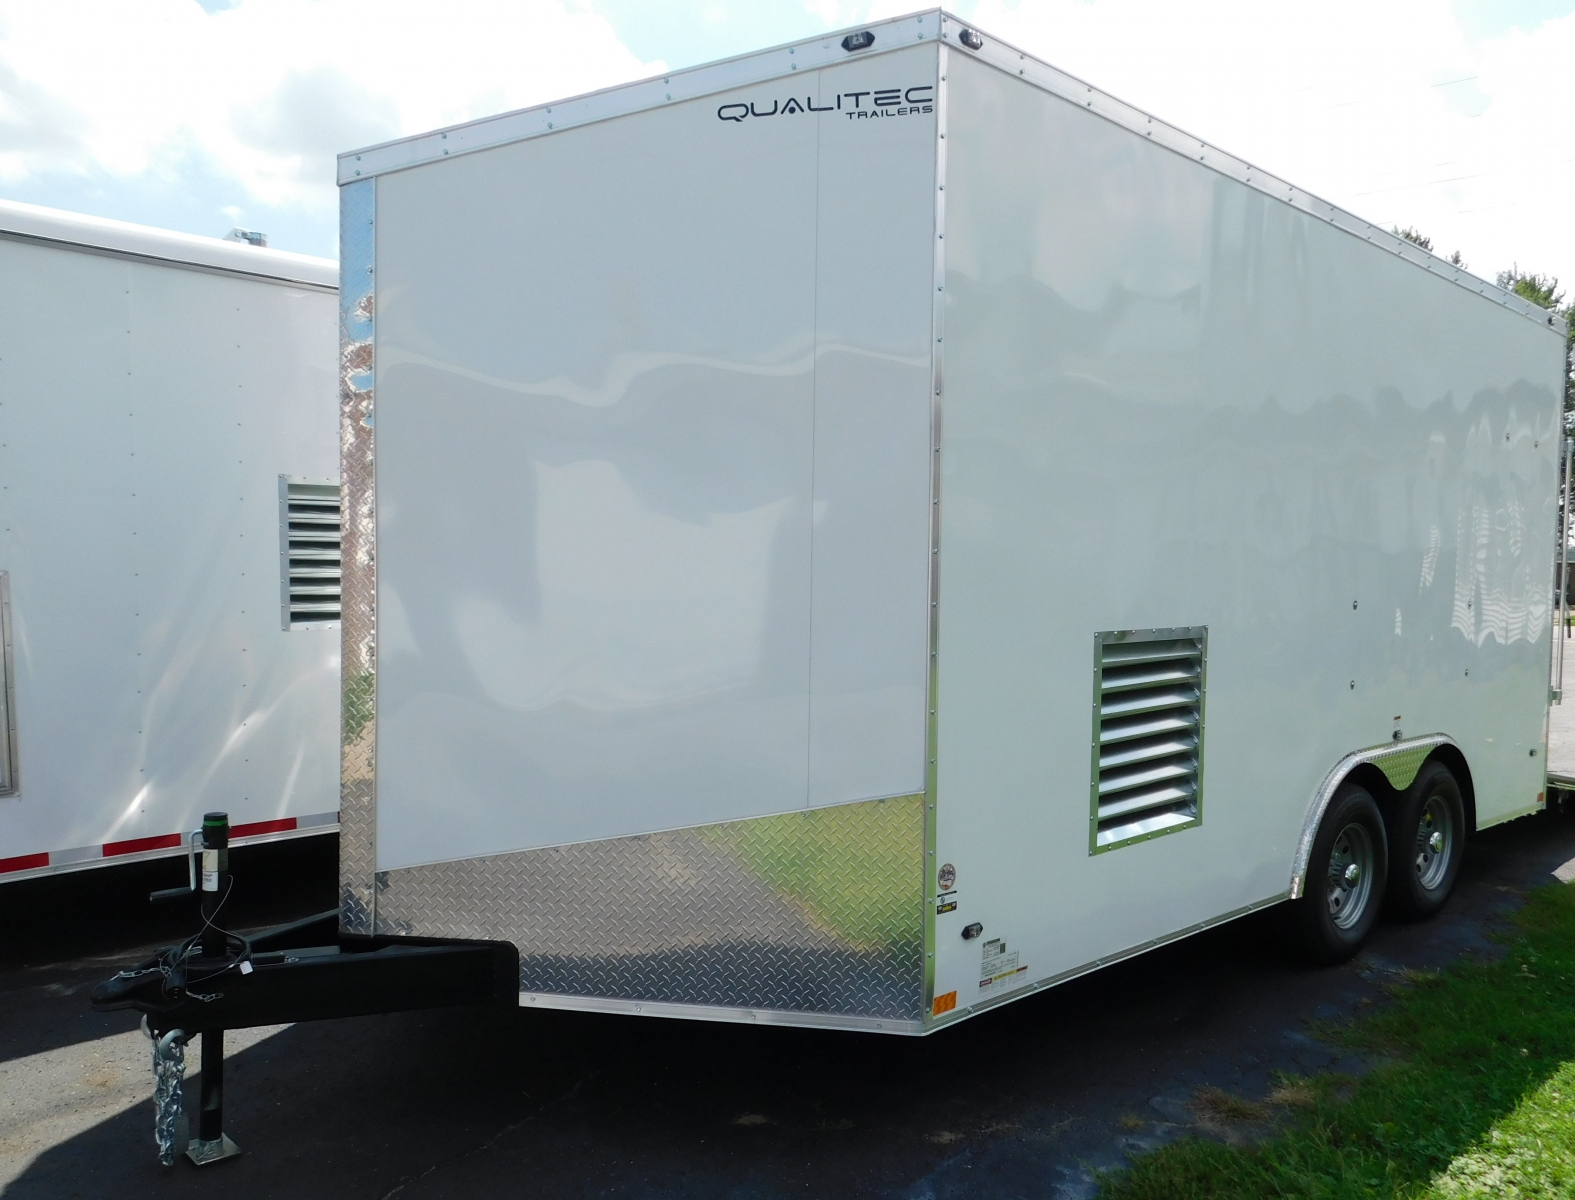 Residential spray foam trailer